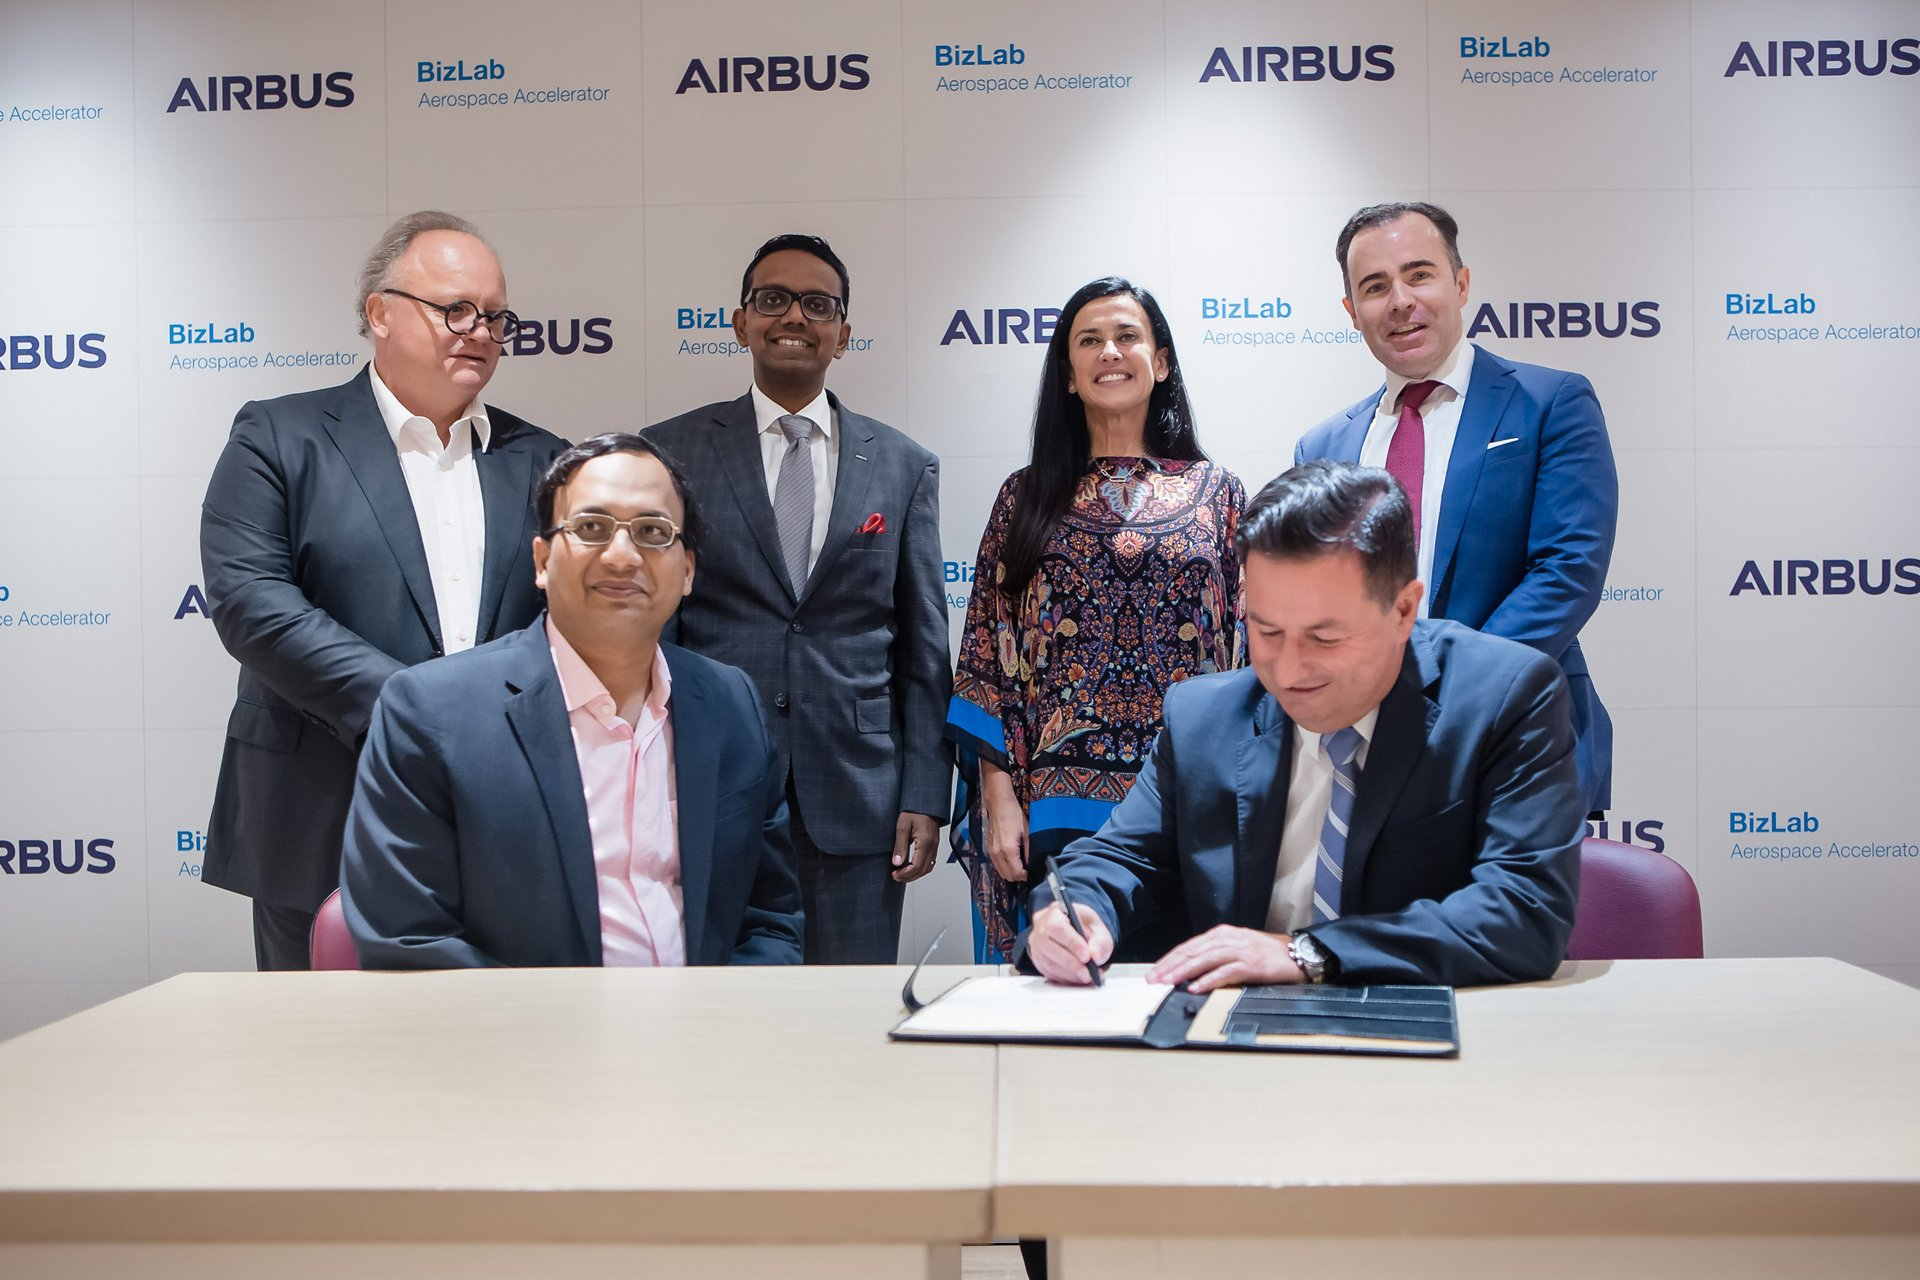 Airbus And Traxof Technologies Team At The Signing Ceremony